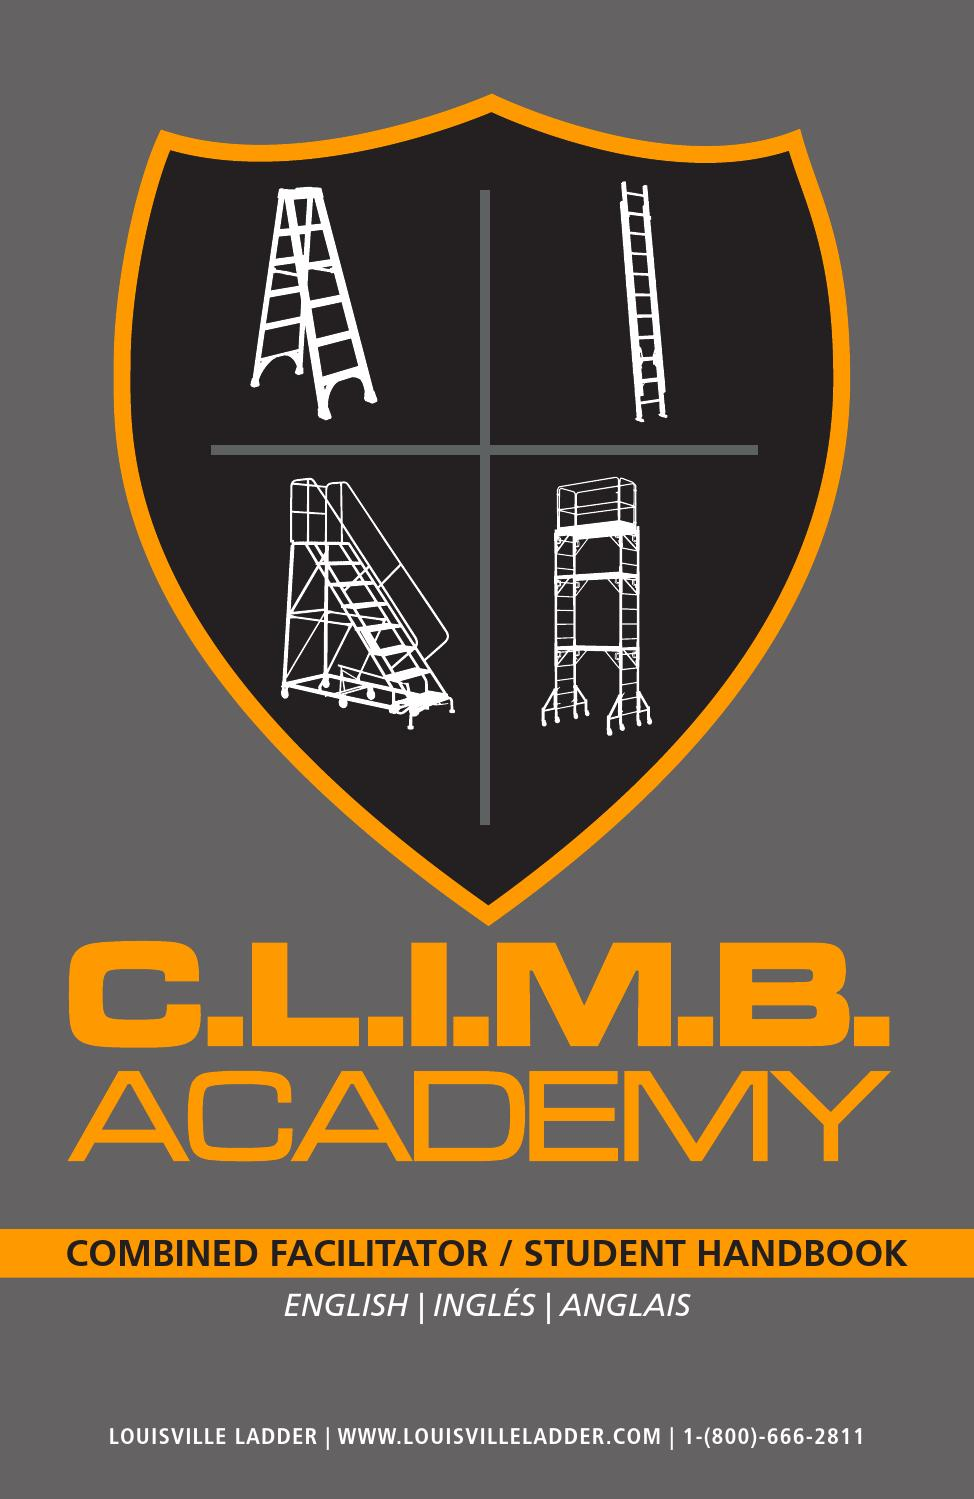 english_CLIMB_handbook by Louisville Ladder Inc. - issuu